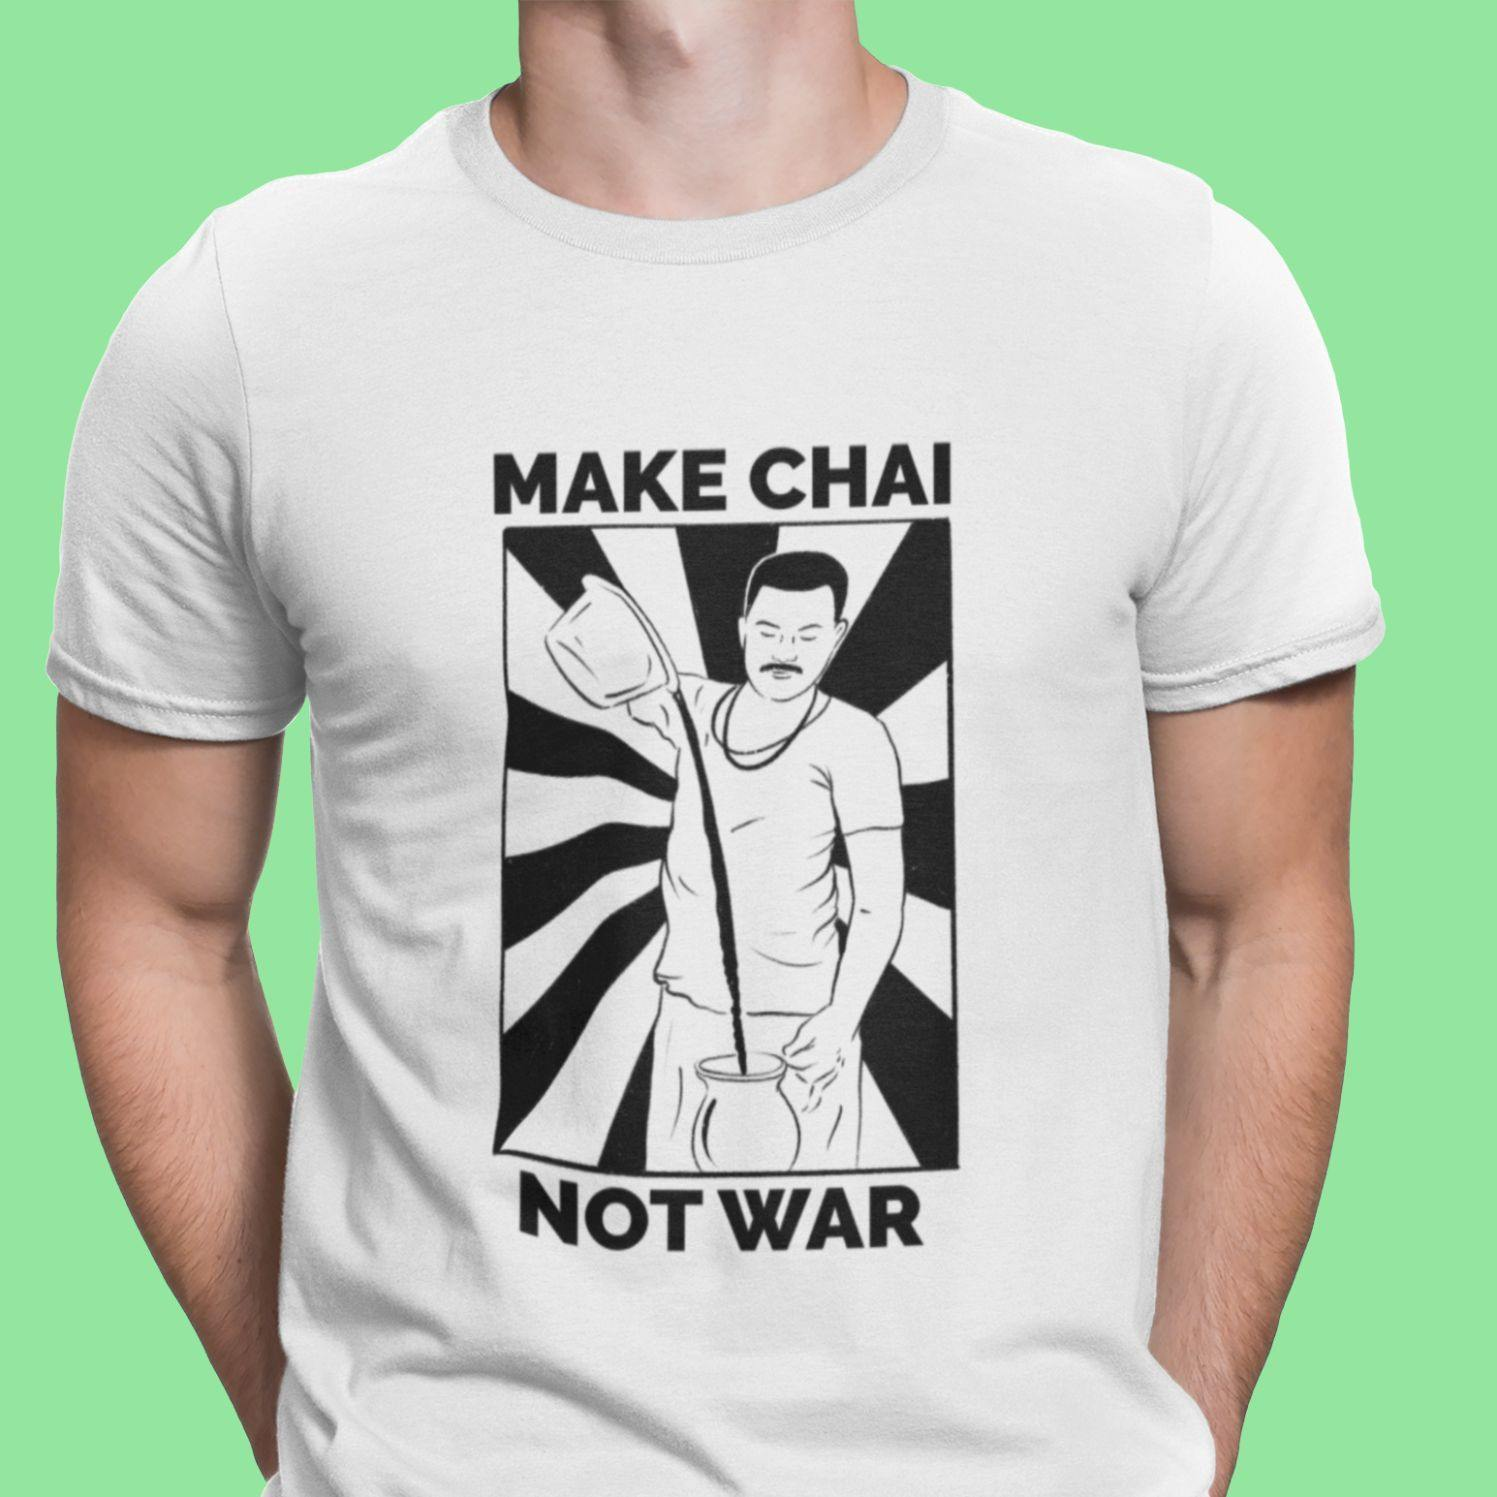 Make Chai, Not War - Men's Tshirt - Daily Suvichar Store